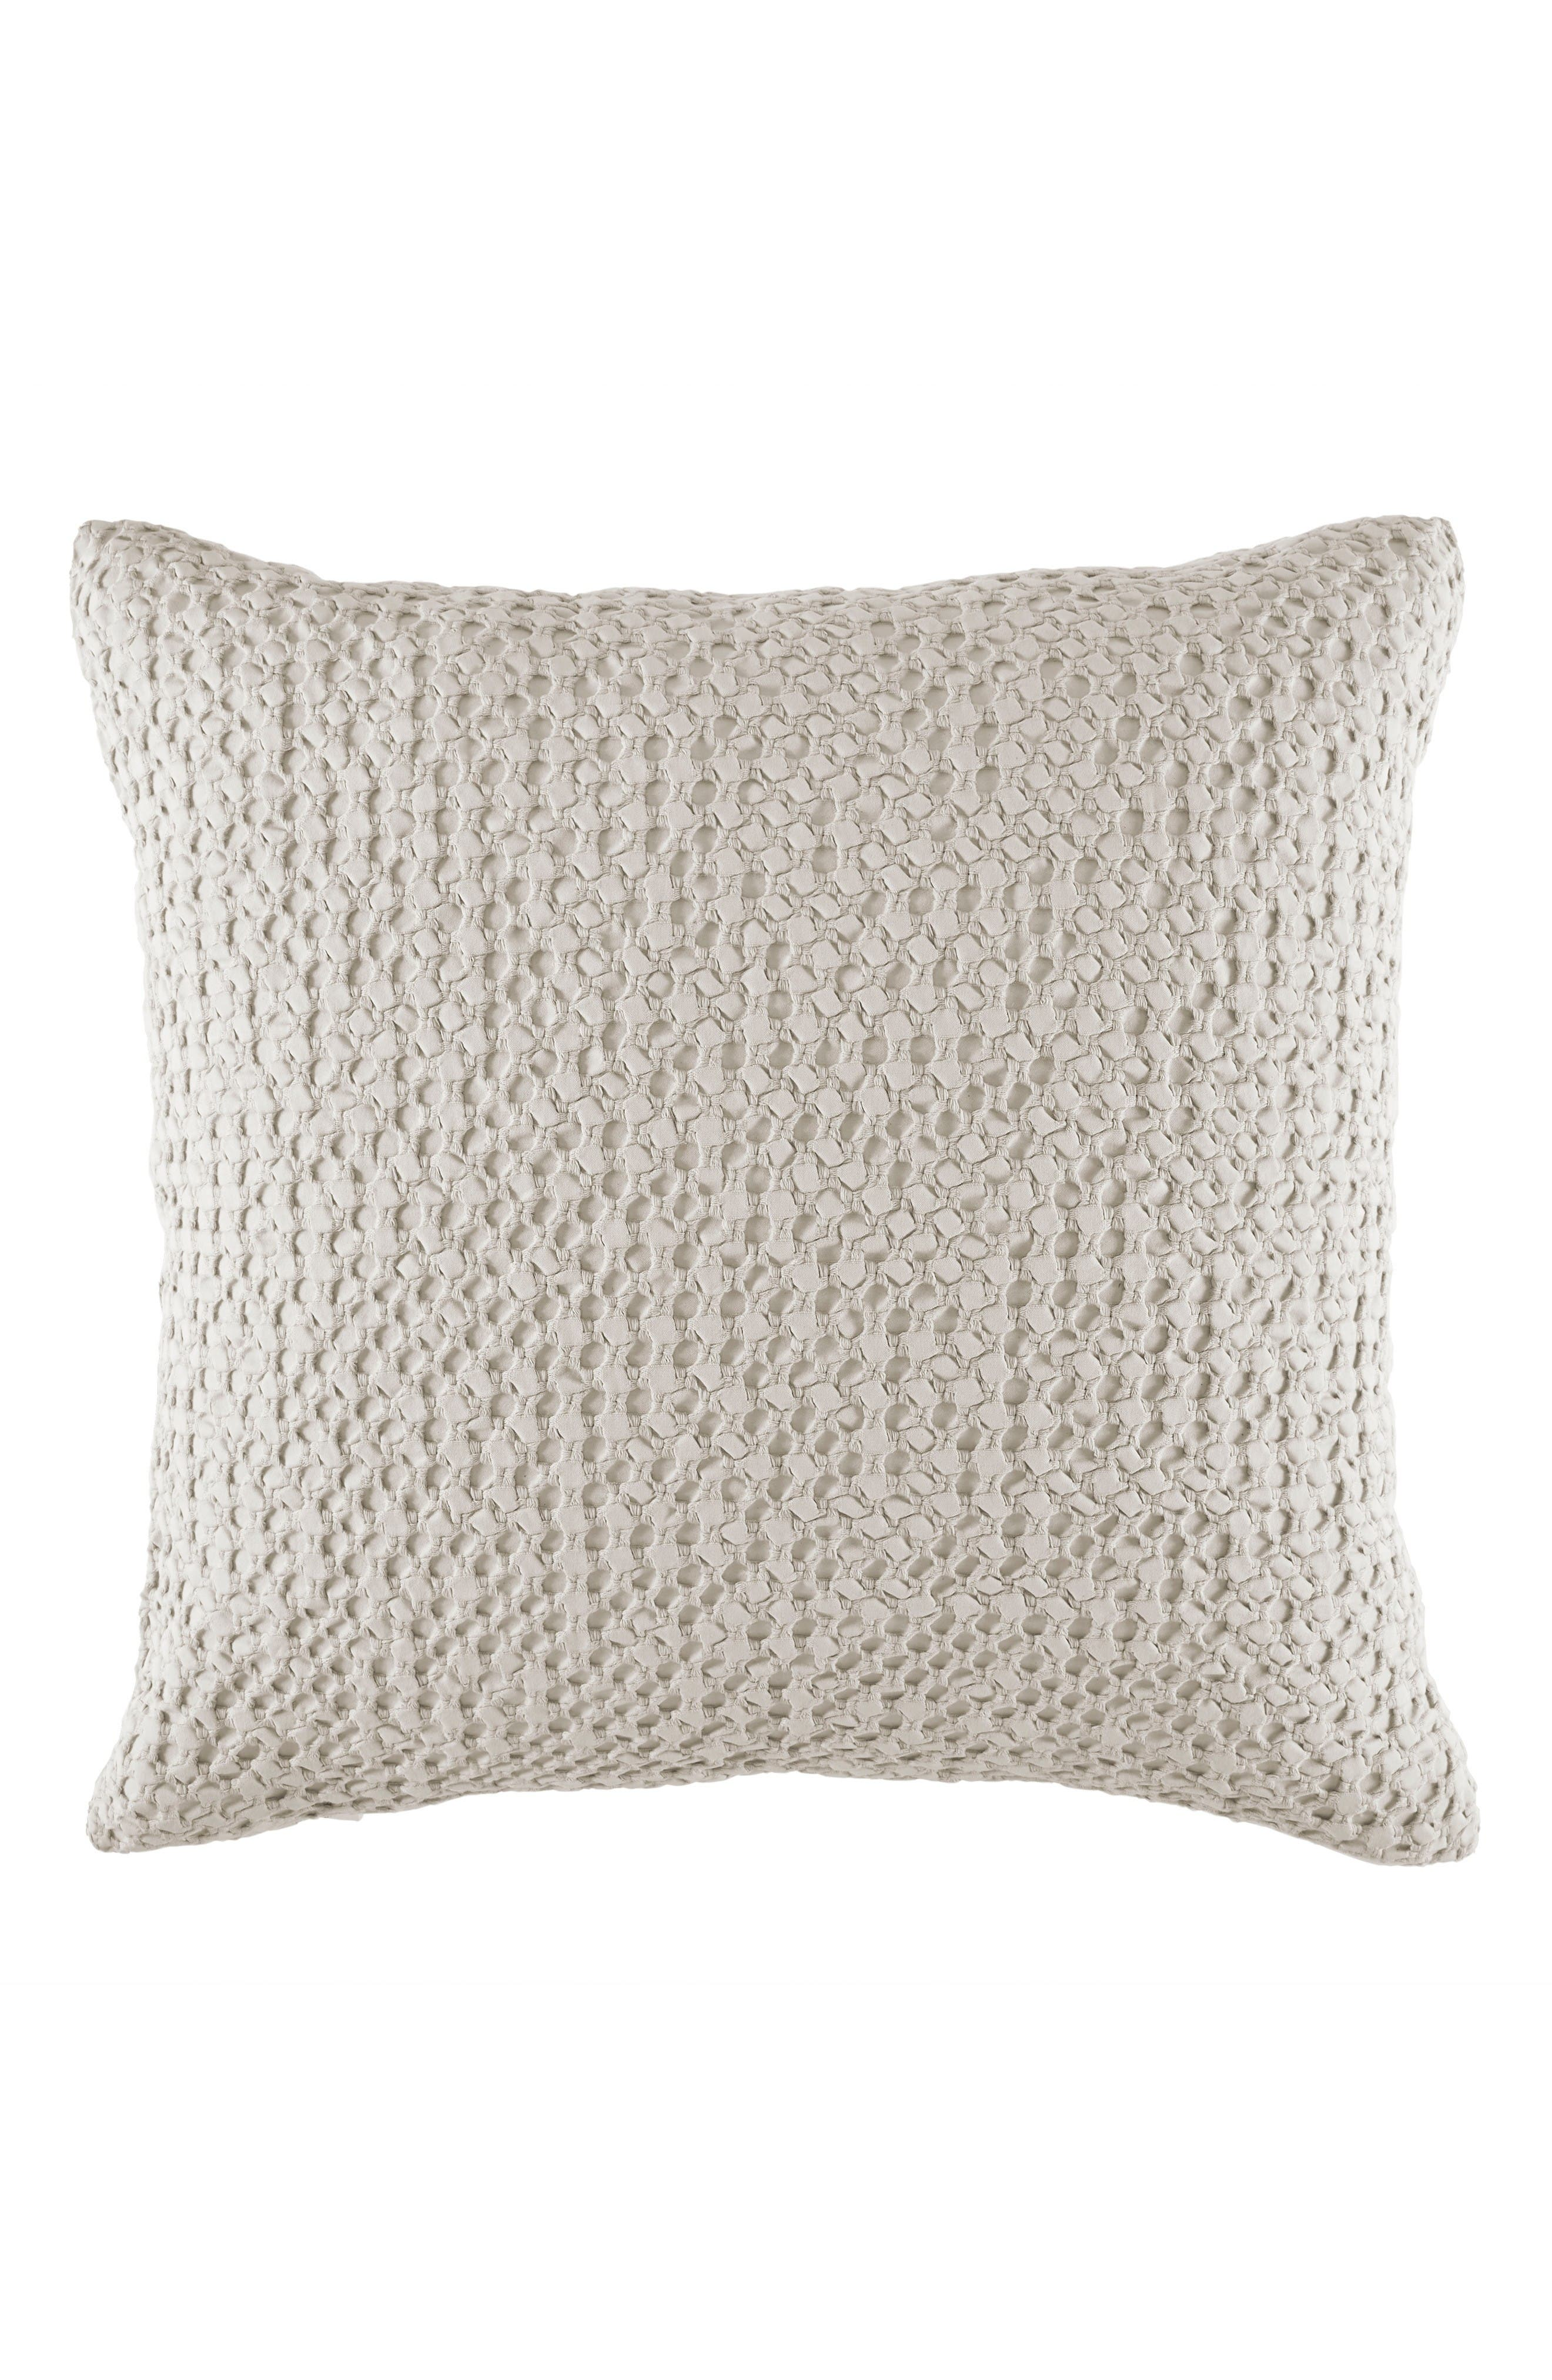 Alternate Image 1 Selected - DwellStudio Thayer Euro Sham